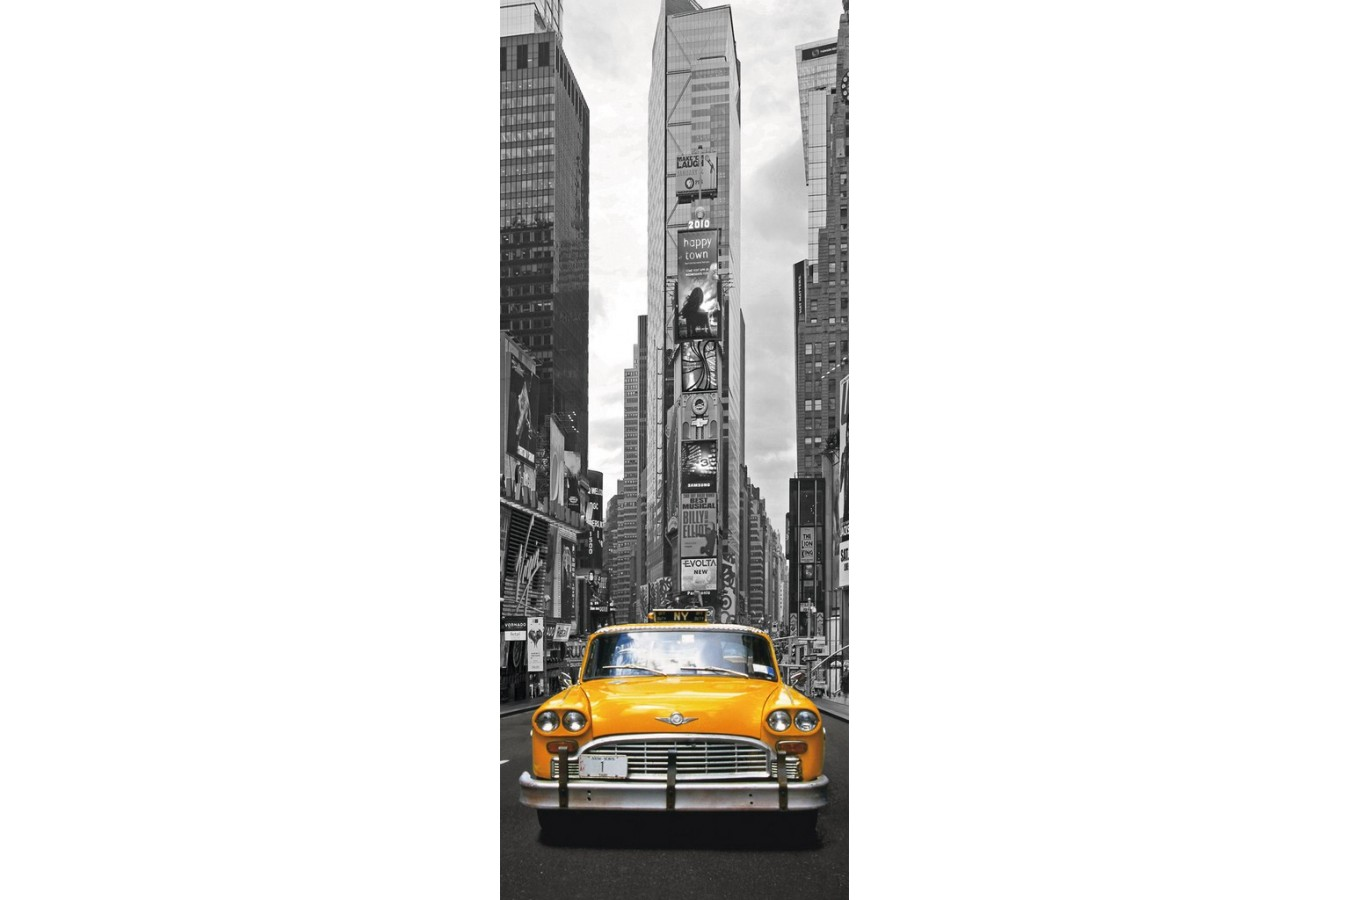 Puzzle Ravensburger - Taxiul Din New York, 1000 piese (15119)